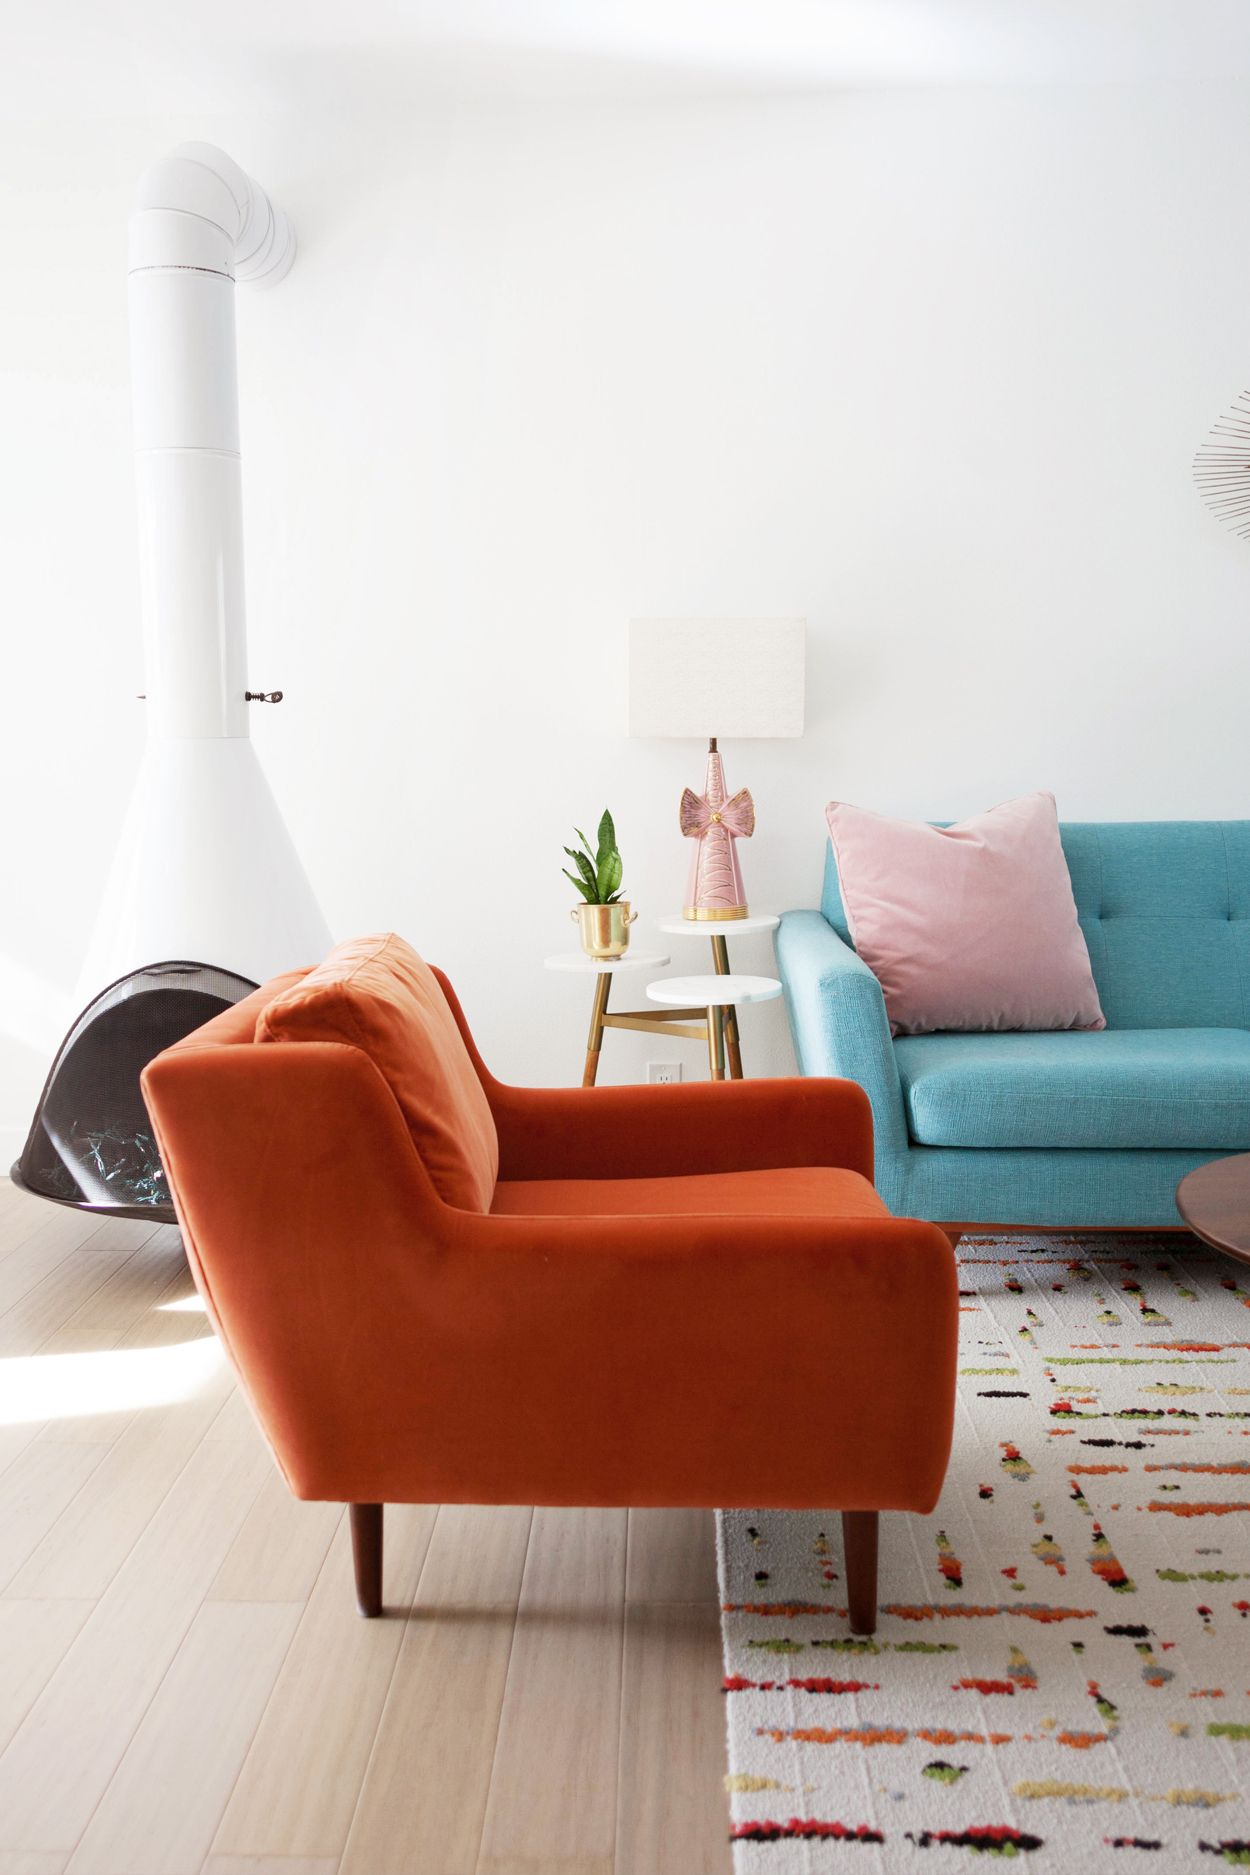 The persimmon orange matrix against my blue sofa feels very retro photo by melodrama